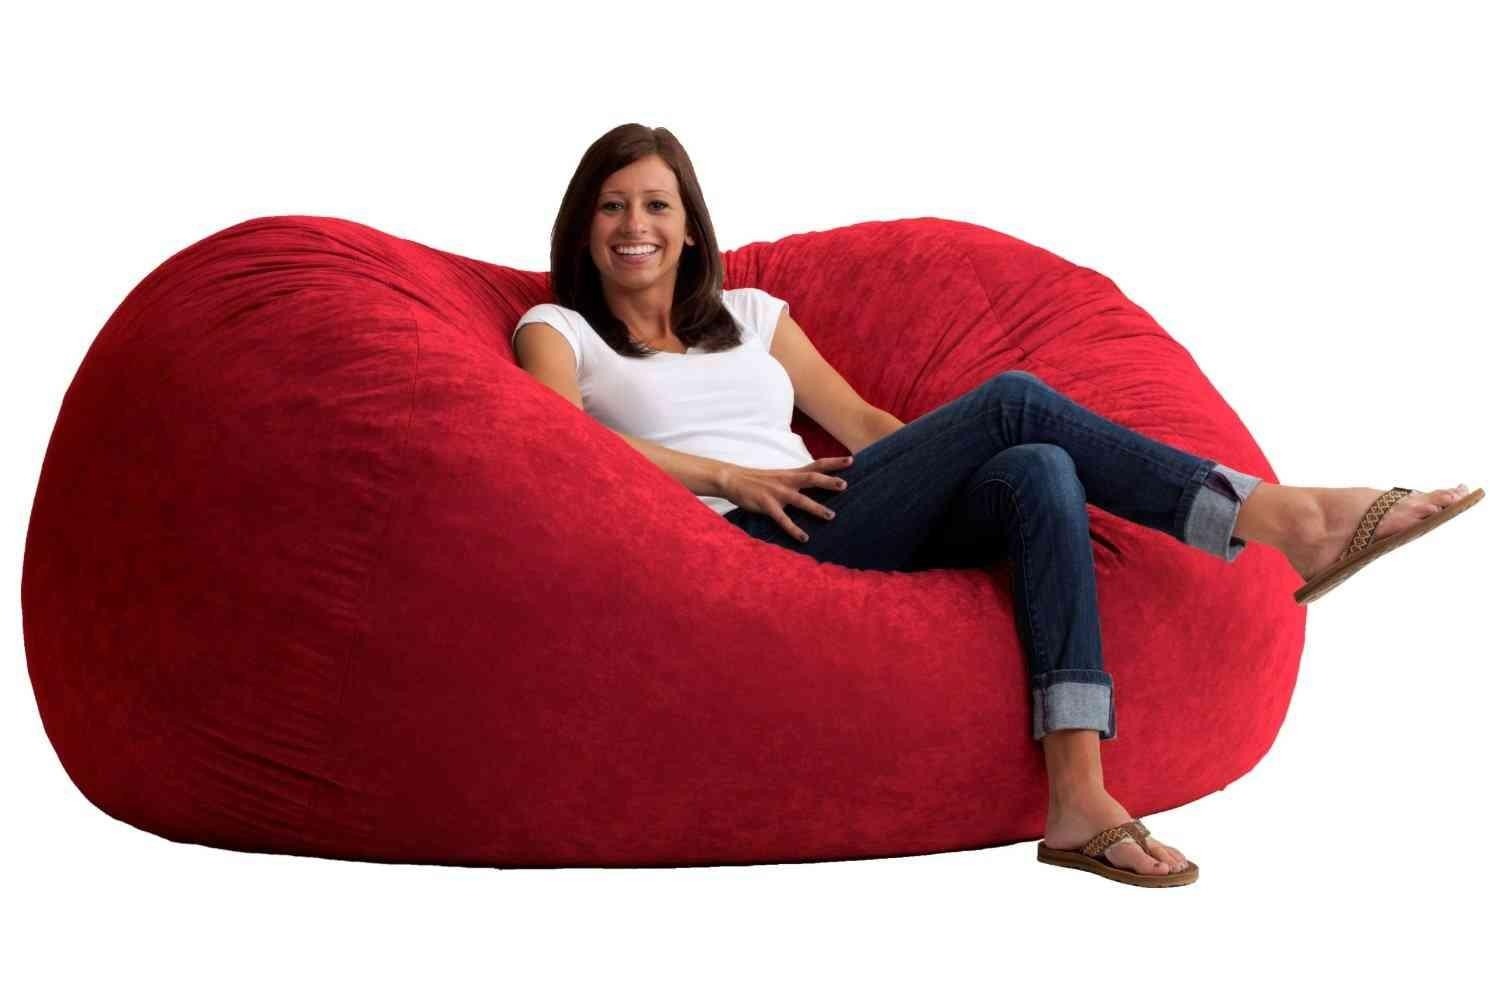 Giant Bean Bag Chair Lounger – Breakyourpiggybank For Giant Bean Bag Chairs (View 6 of 20)